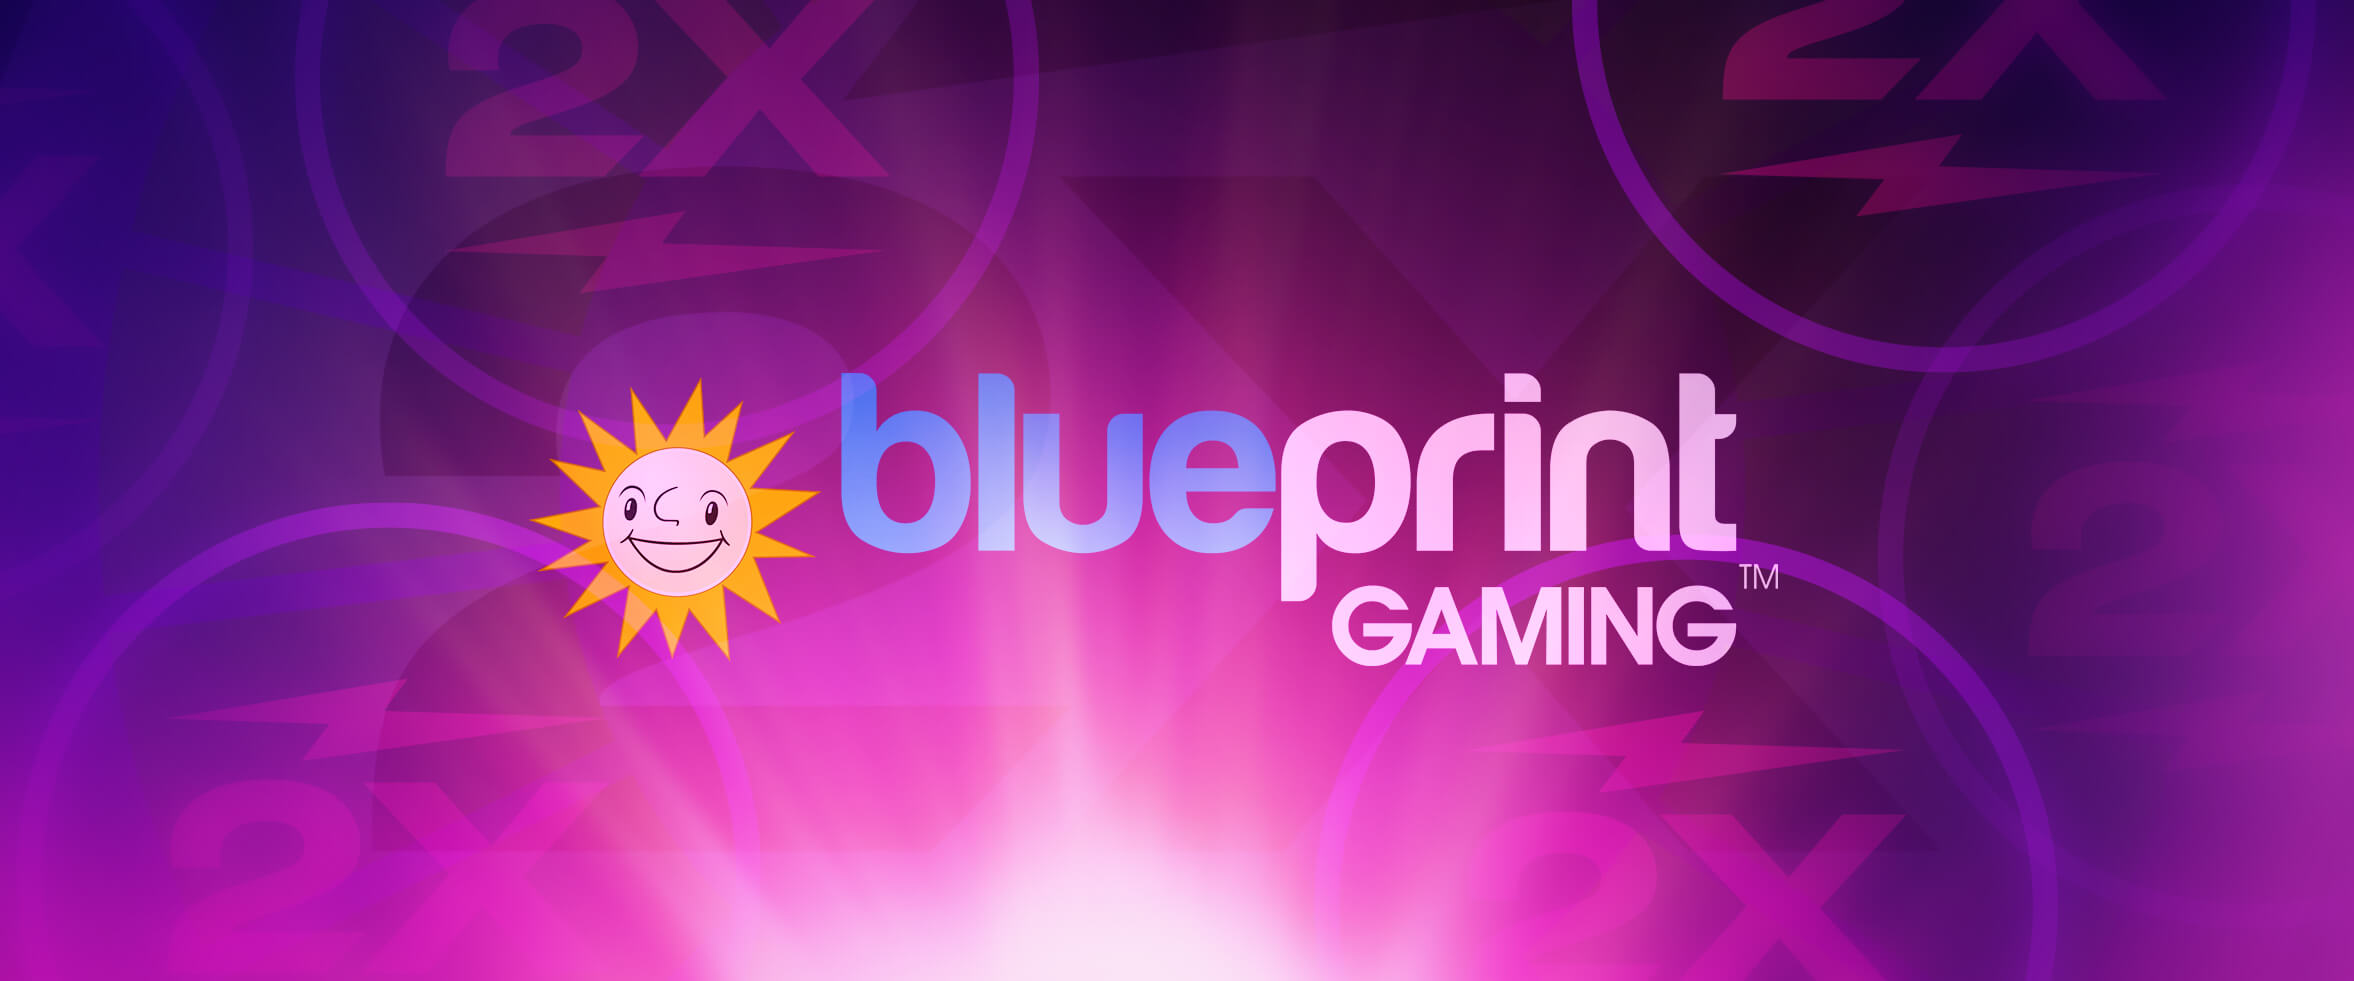 Welcome Blueprint Gaming with Double Speed